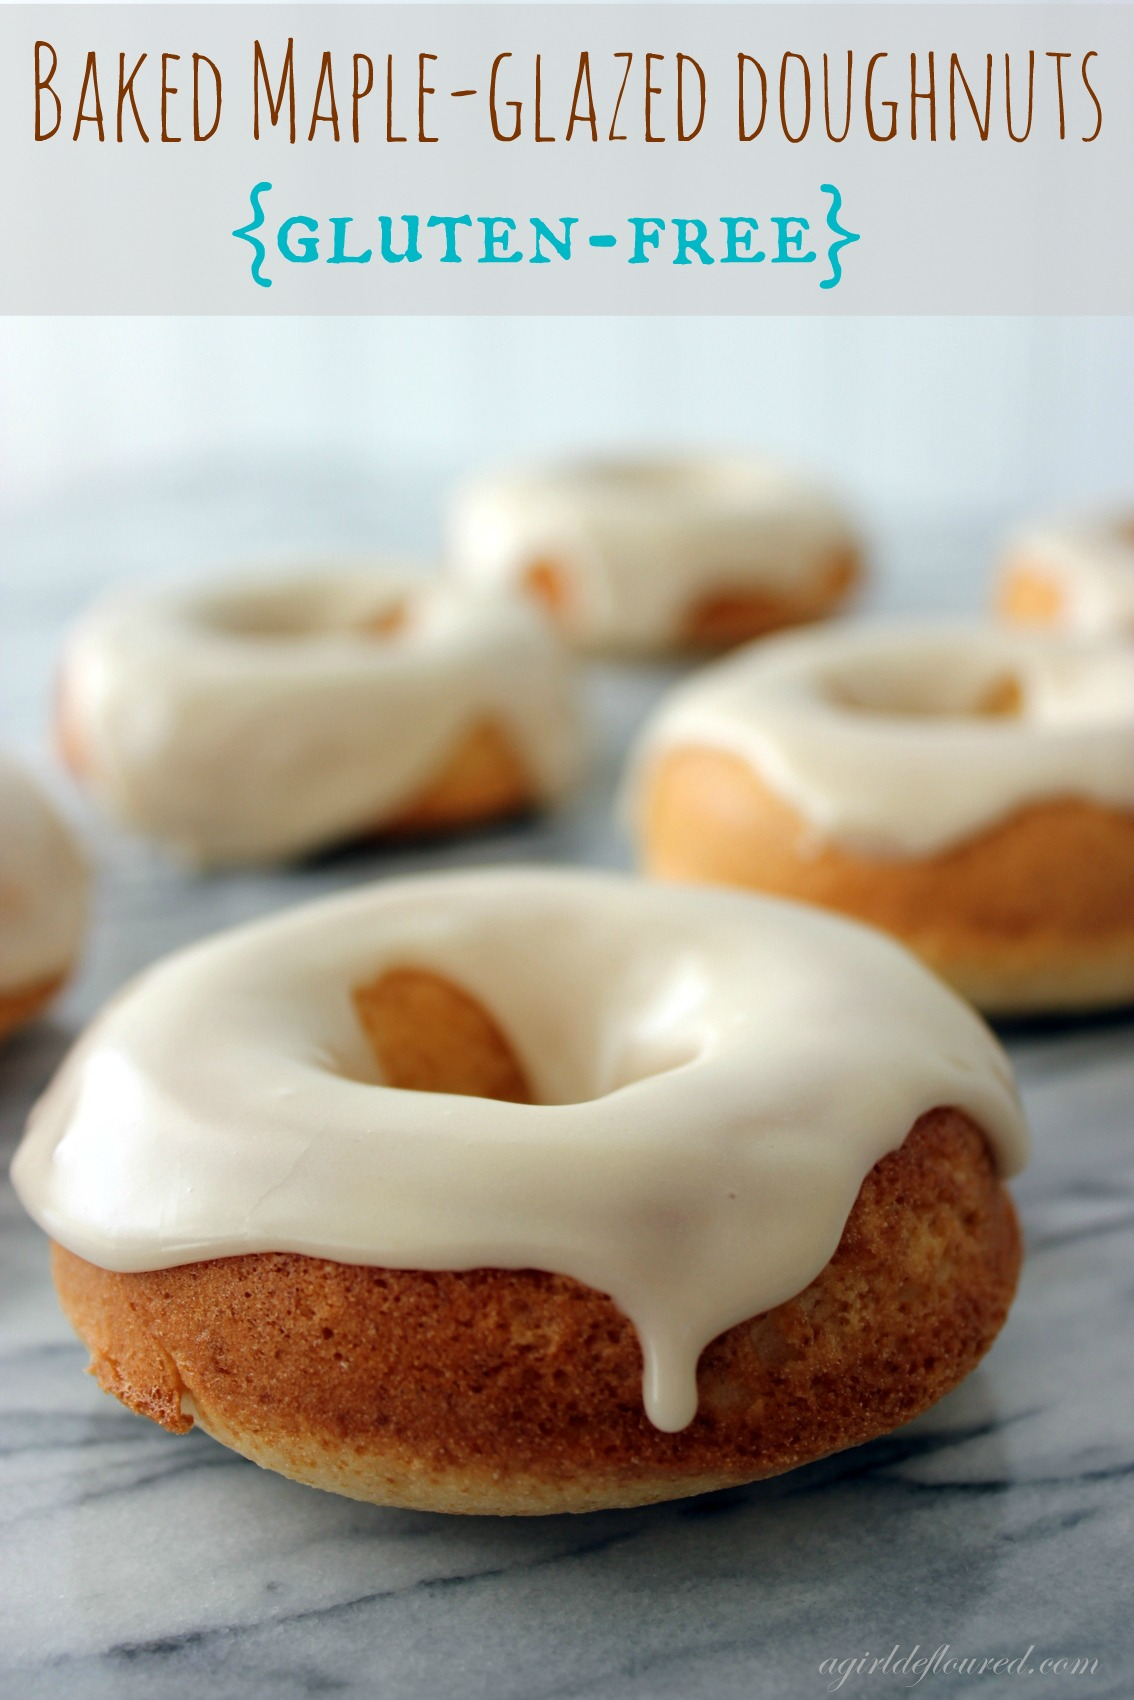 Baked Maple-Glazed Doughnuts